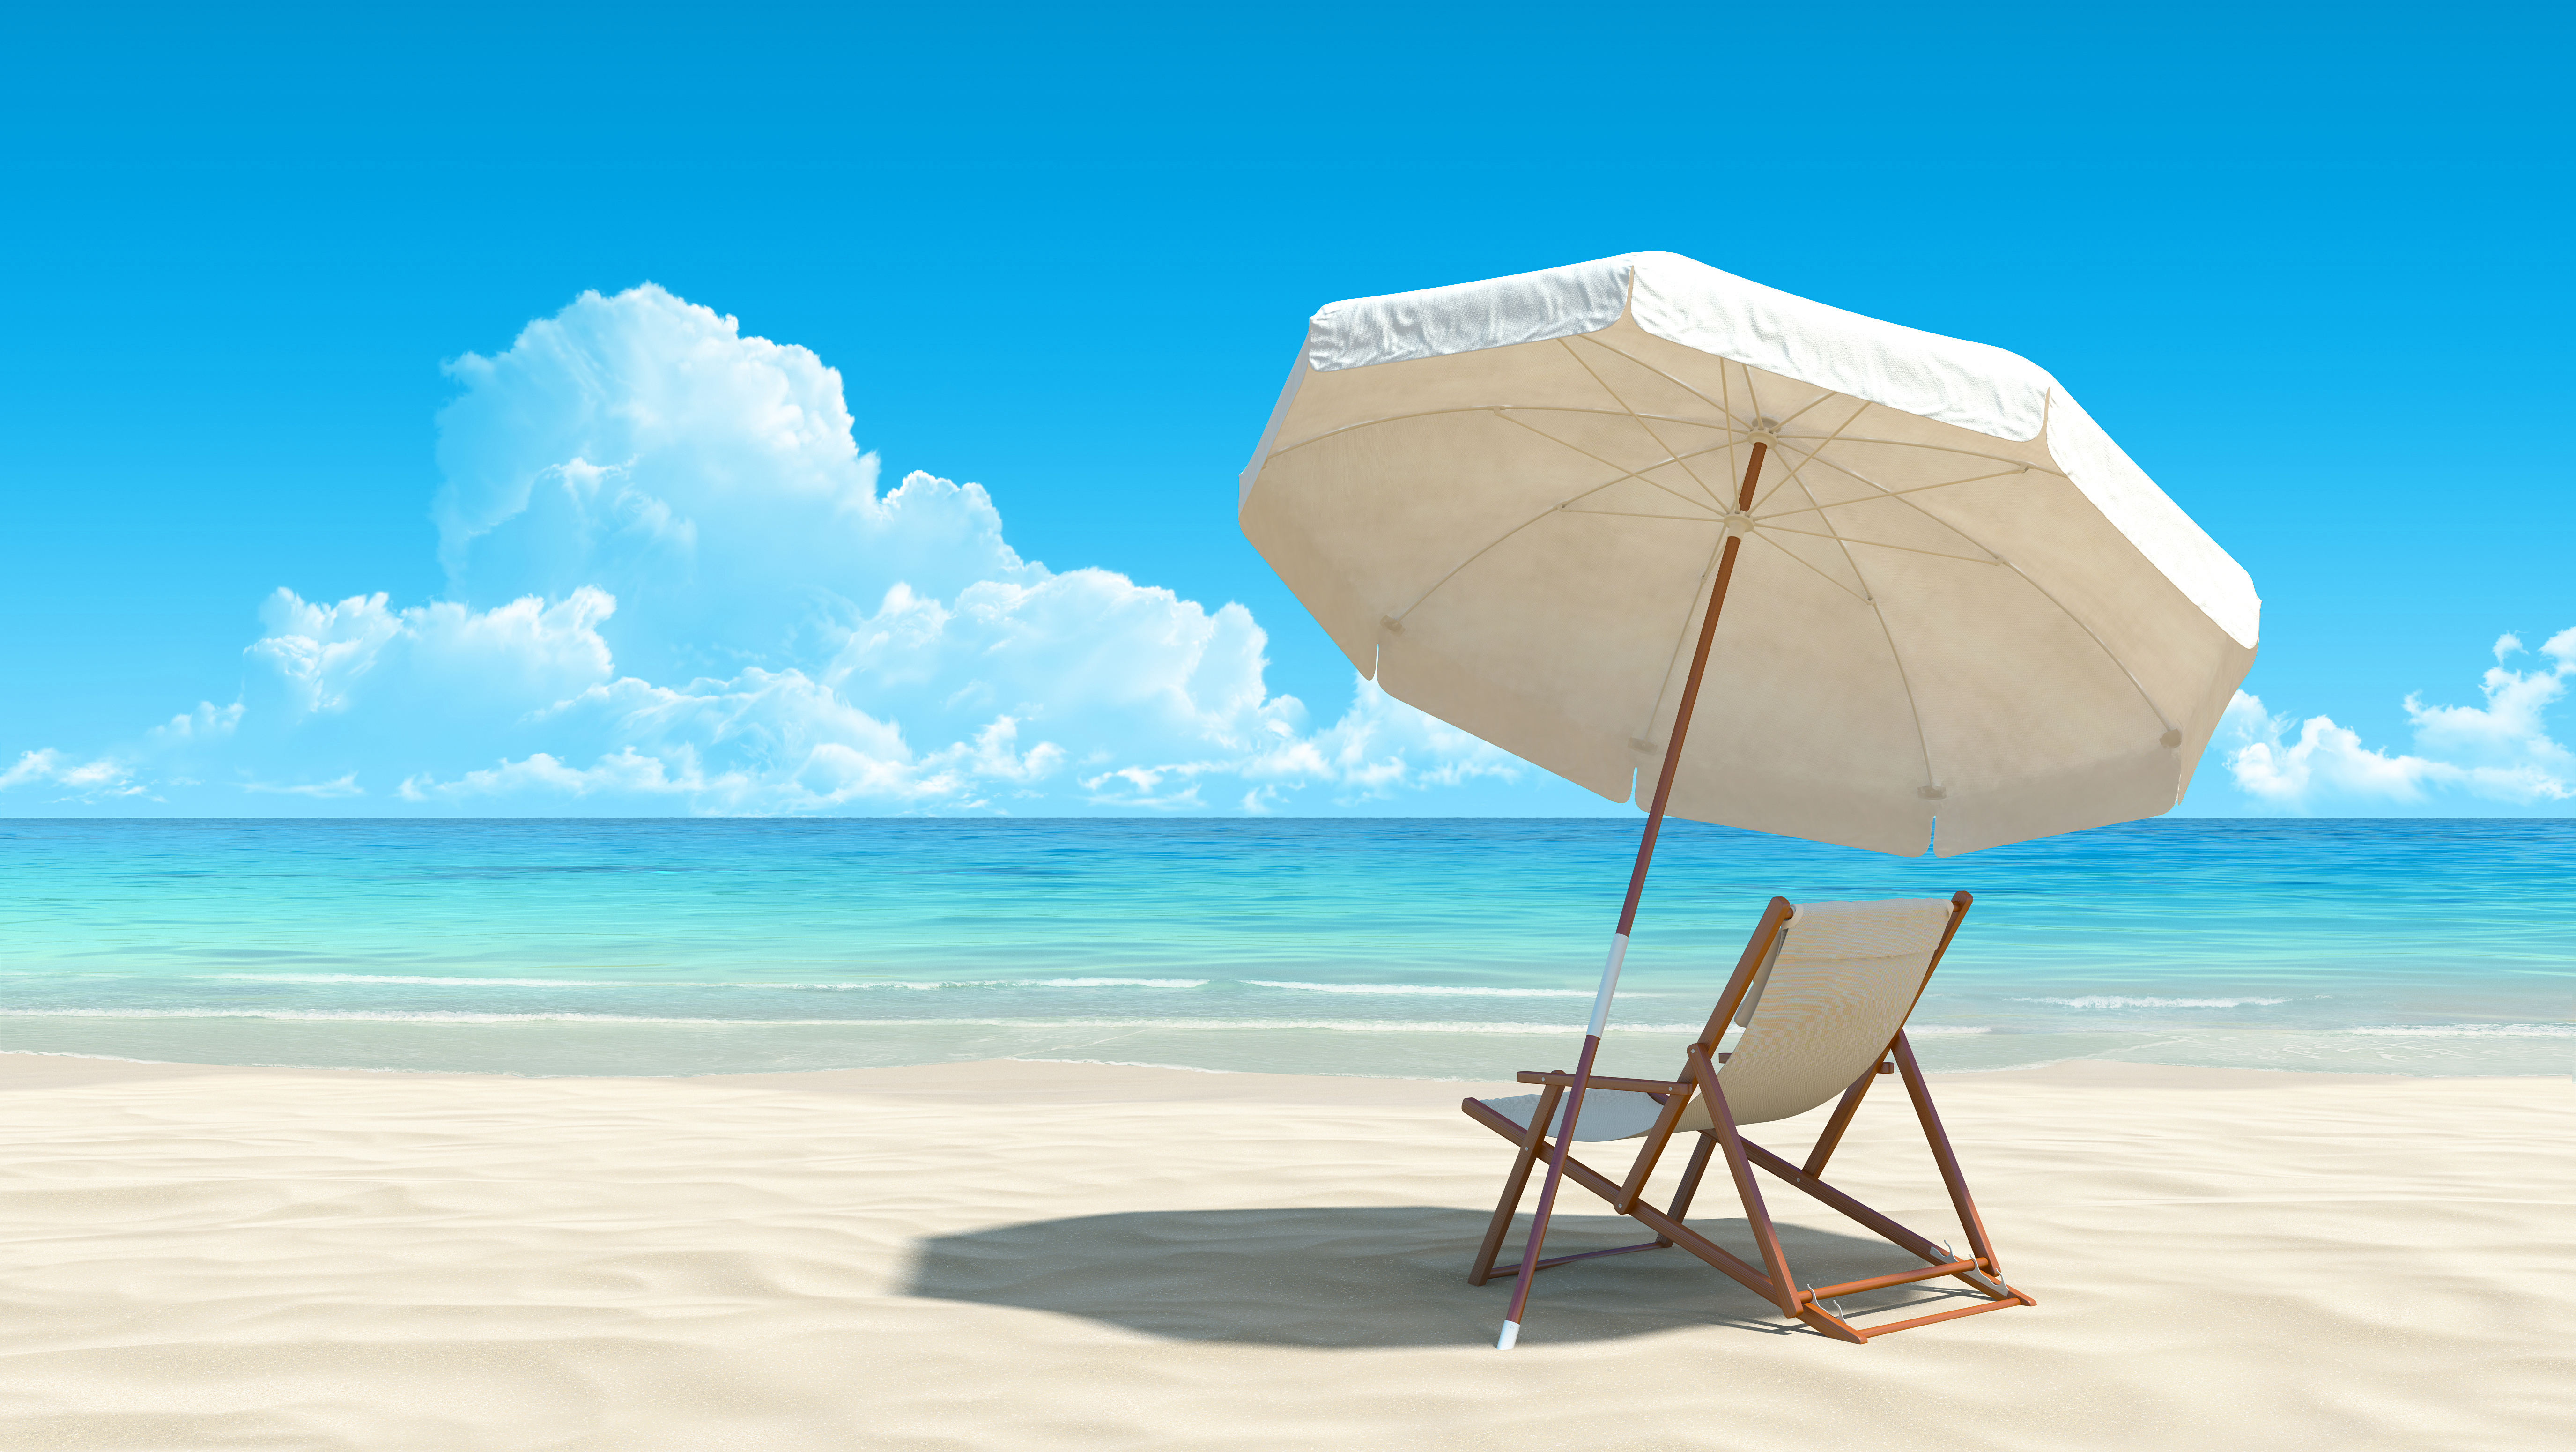 White Beach Lounge Chair and Umbrella Background.